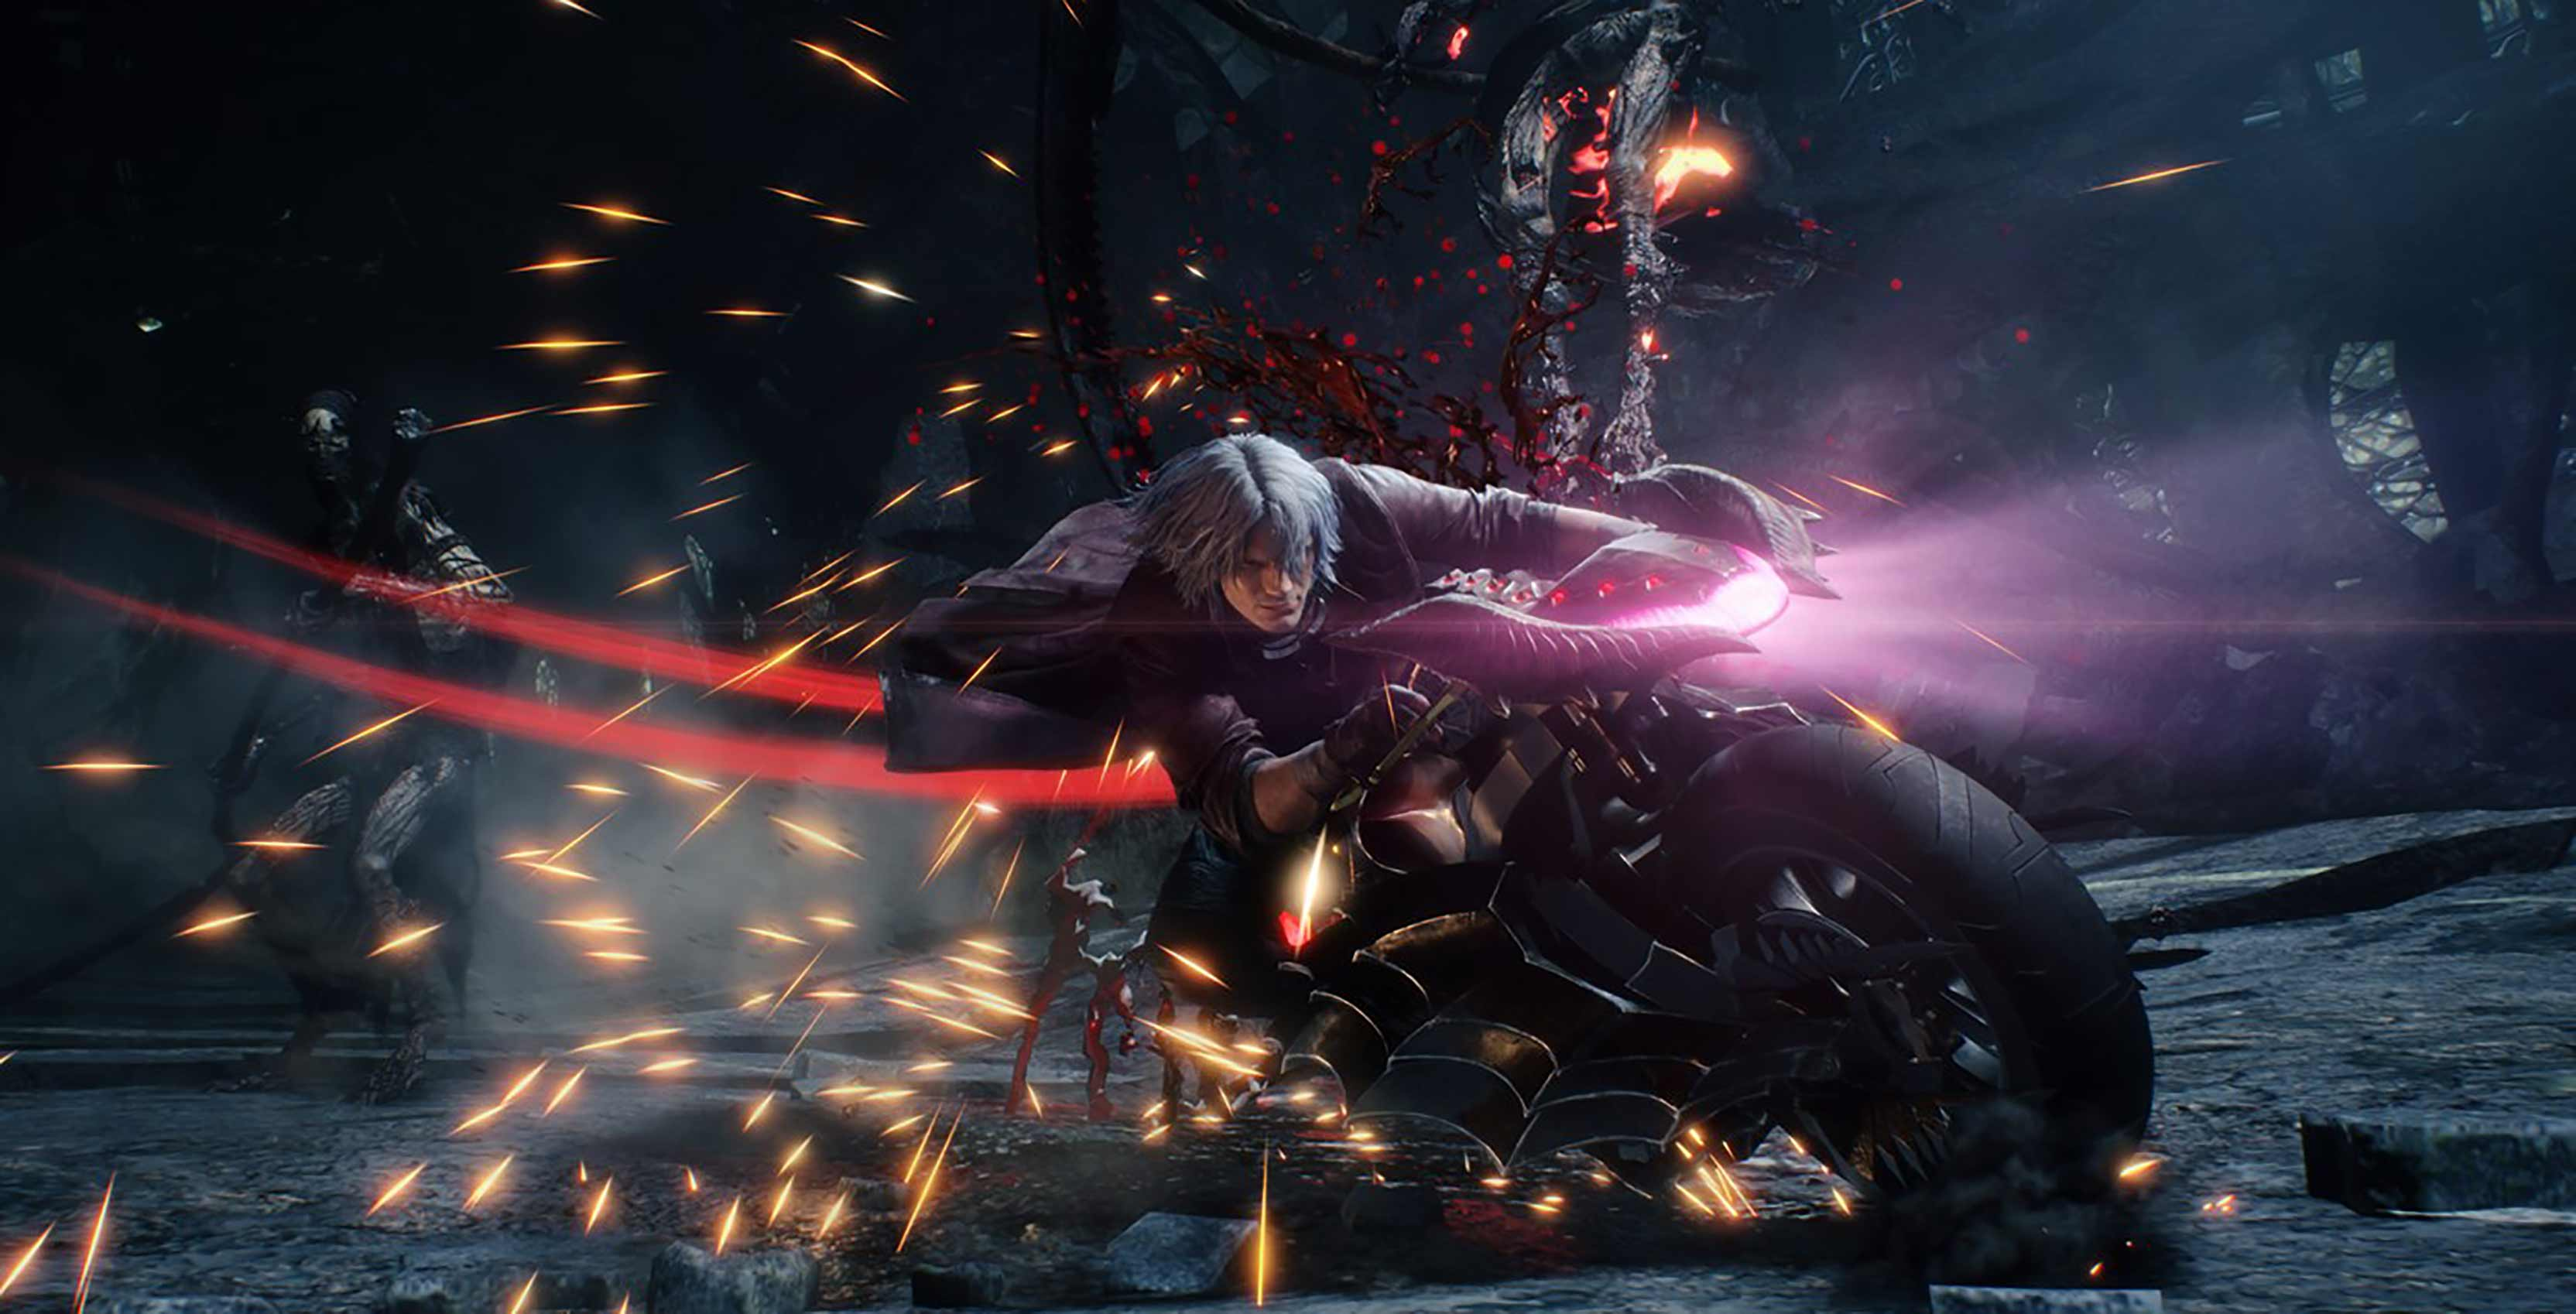 Devil May Cry 5 Dante on motorcycle